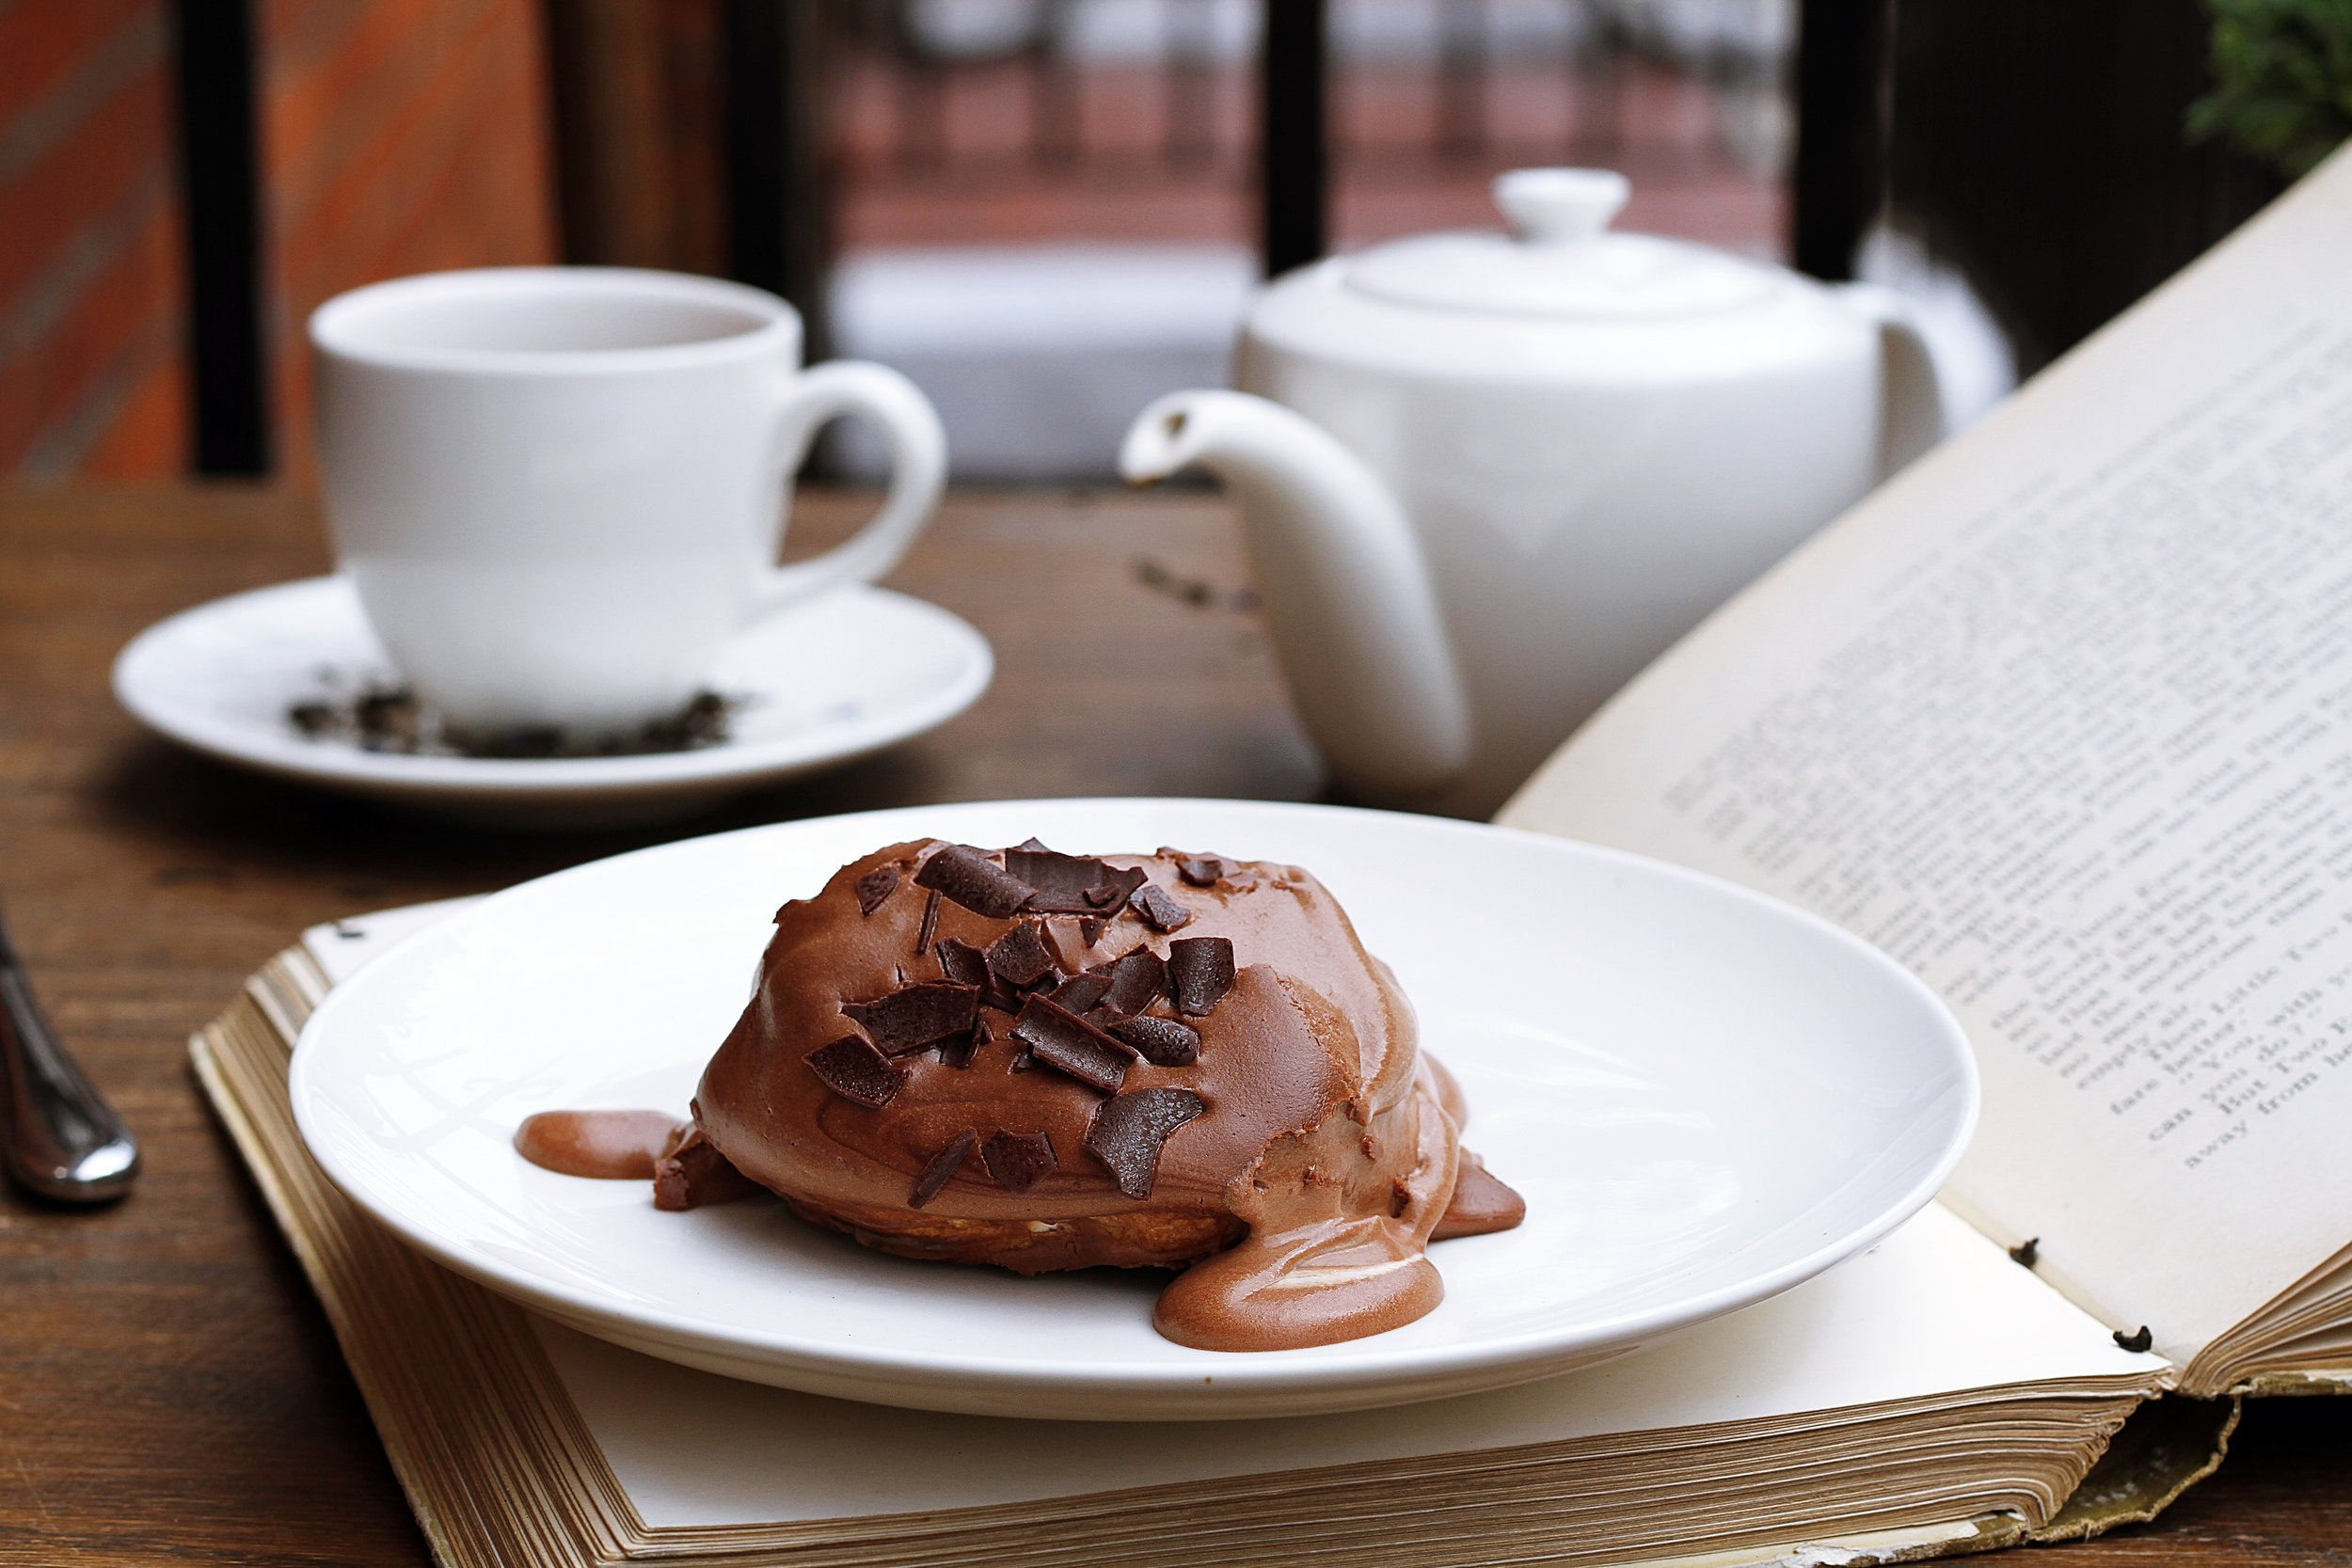 table with chocolate pastry, tea, and a book